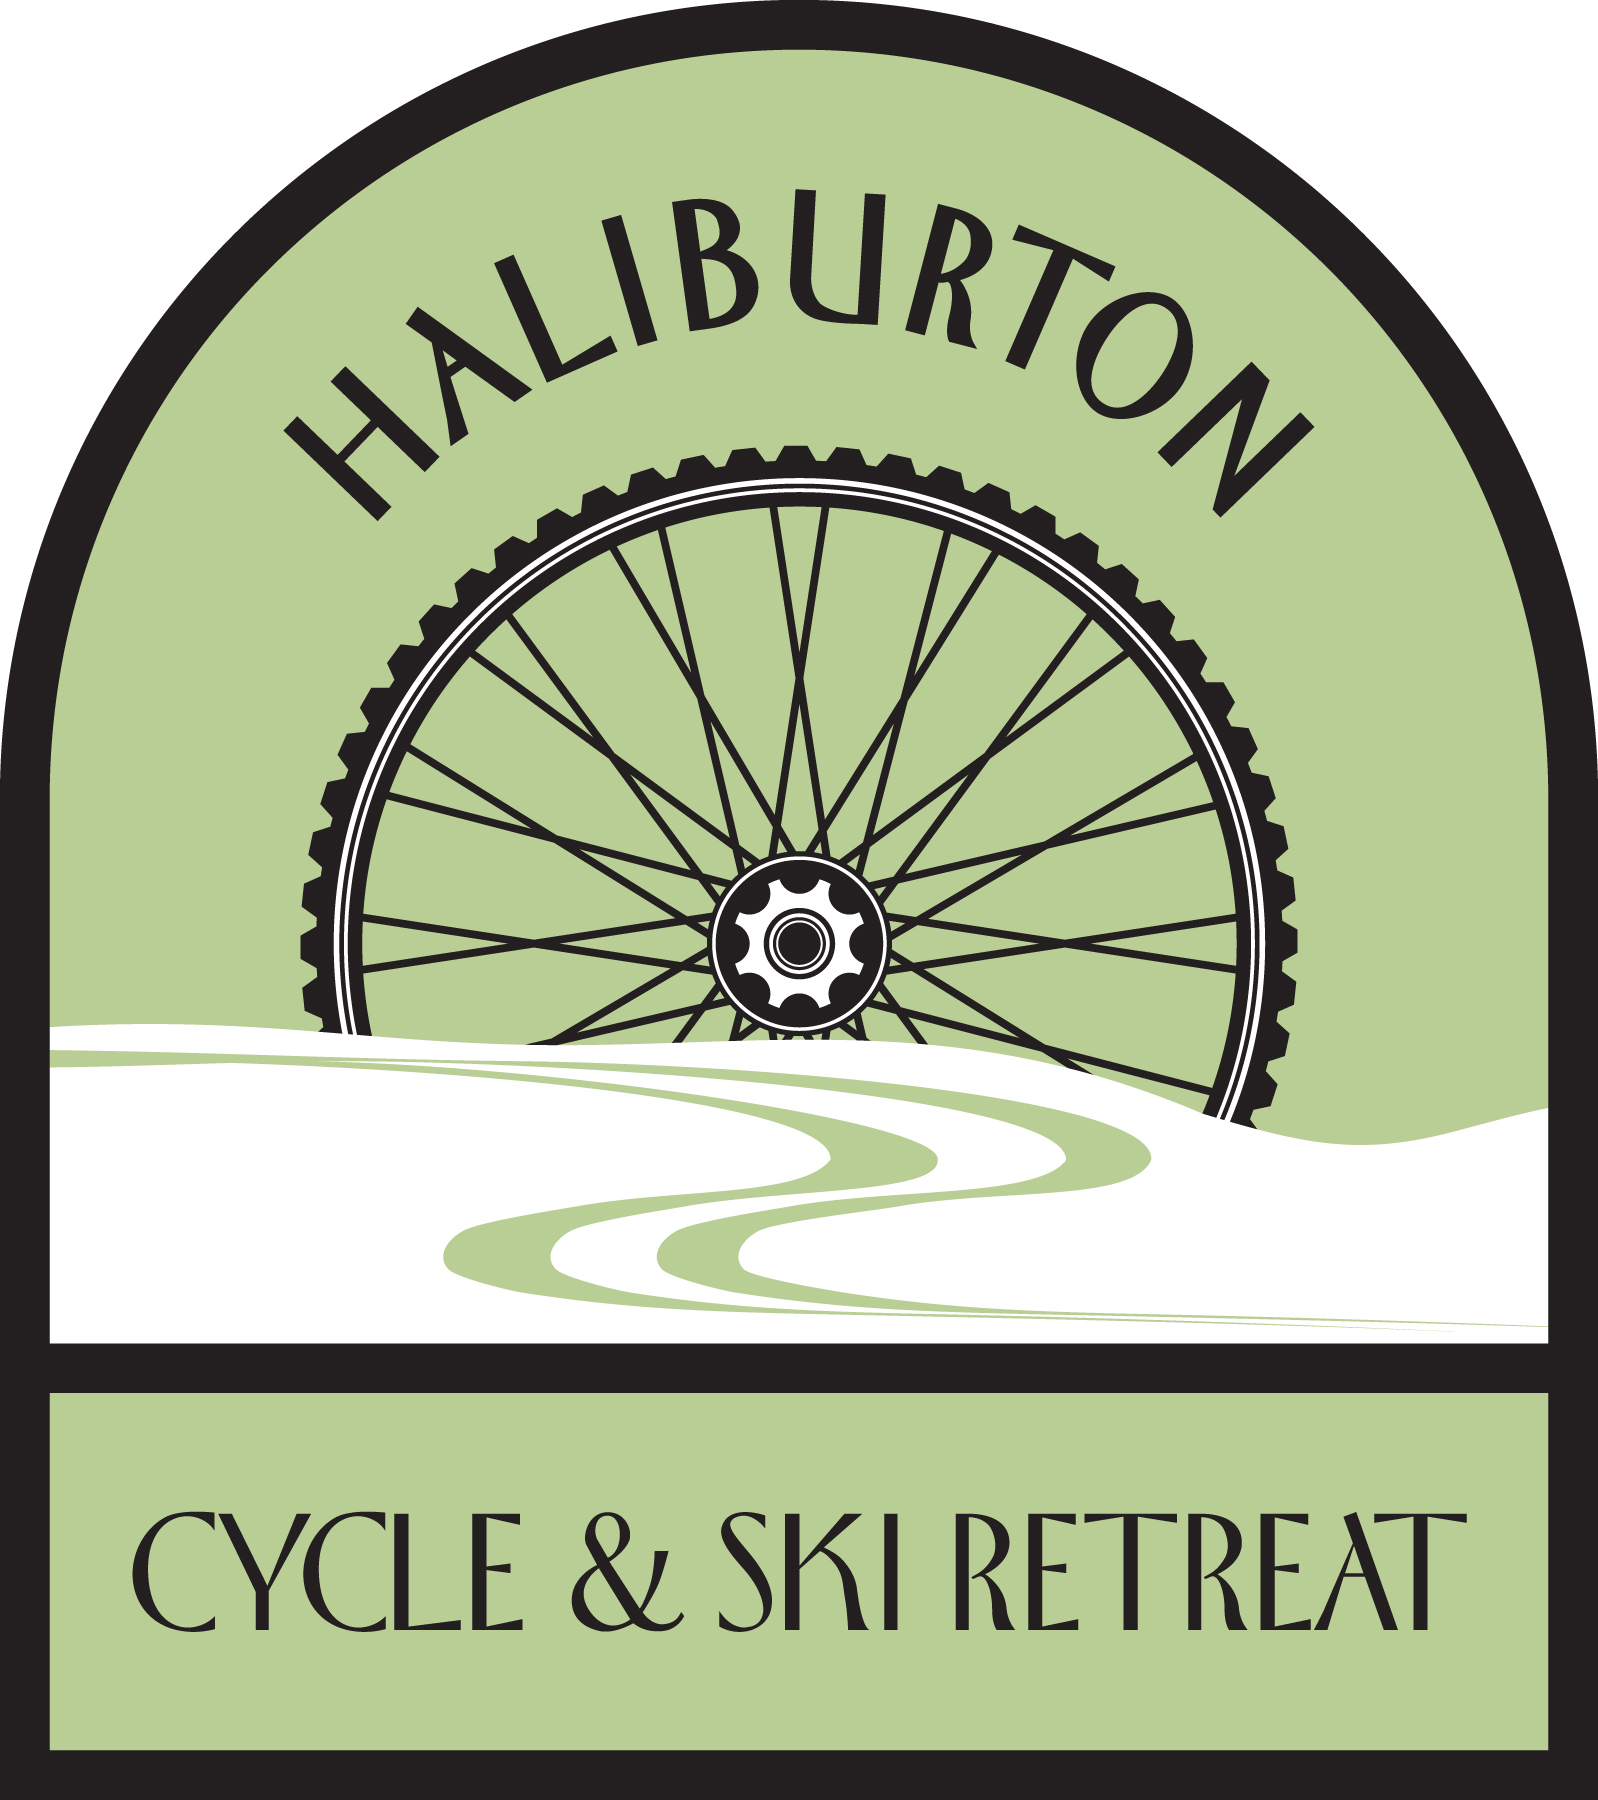 Haliburton Cycle and Ski Retreat logo